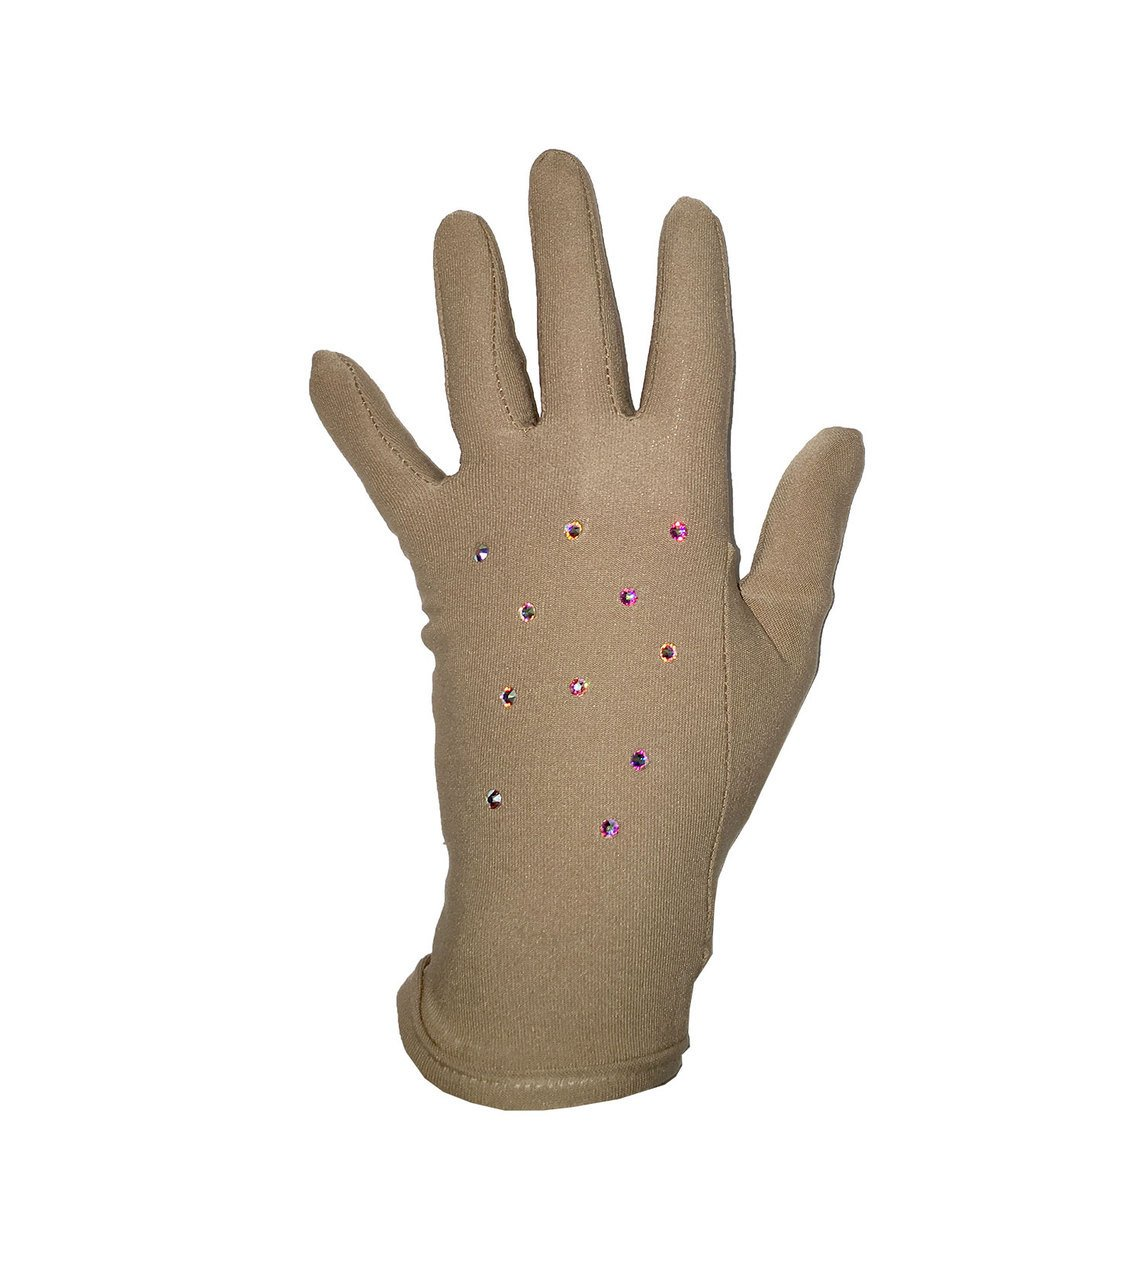 Figure Skating Gloves For Competition and Practice with Gel Wrist Protection and Swarovski Crystals (Small, Beige) by Kami-So